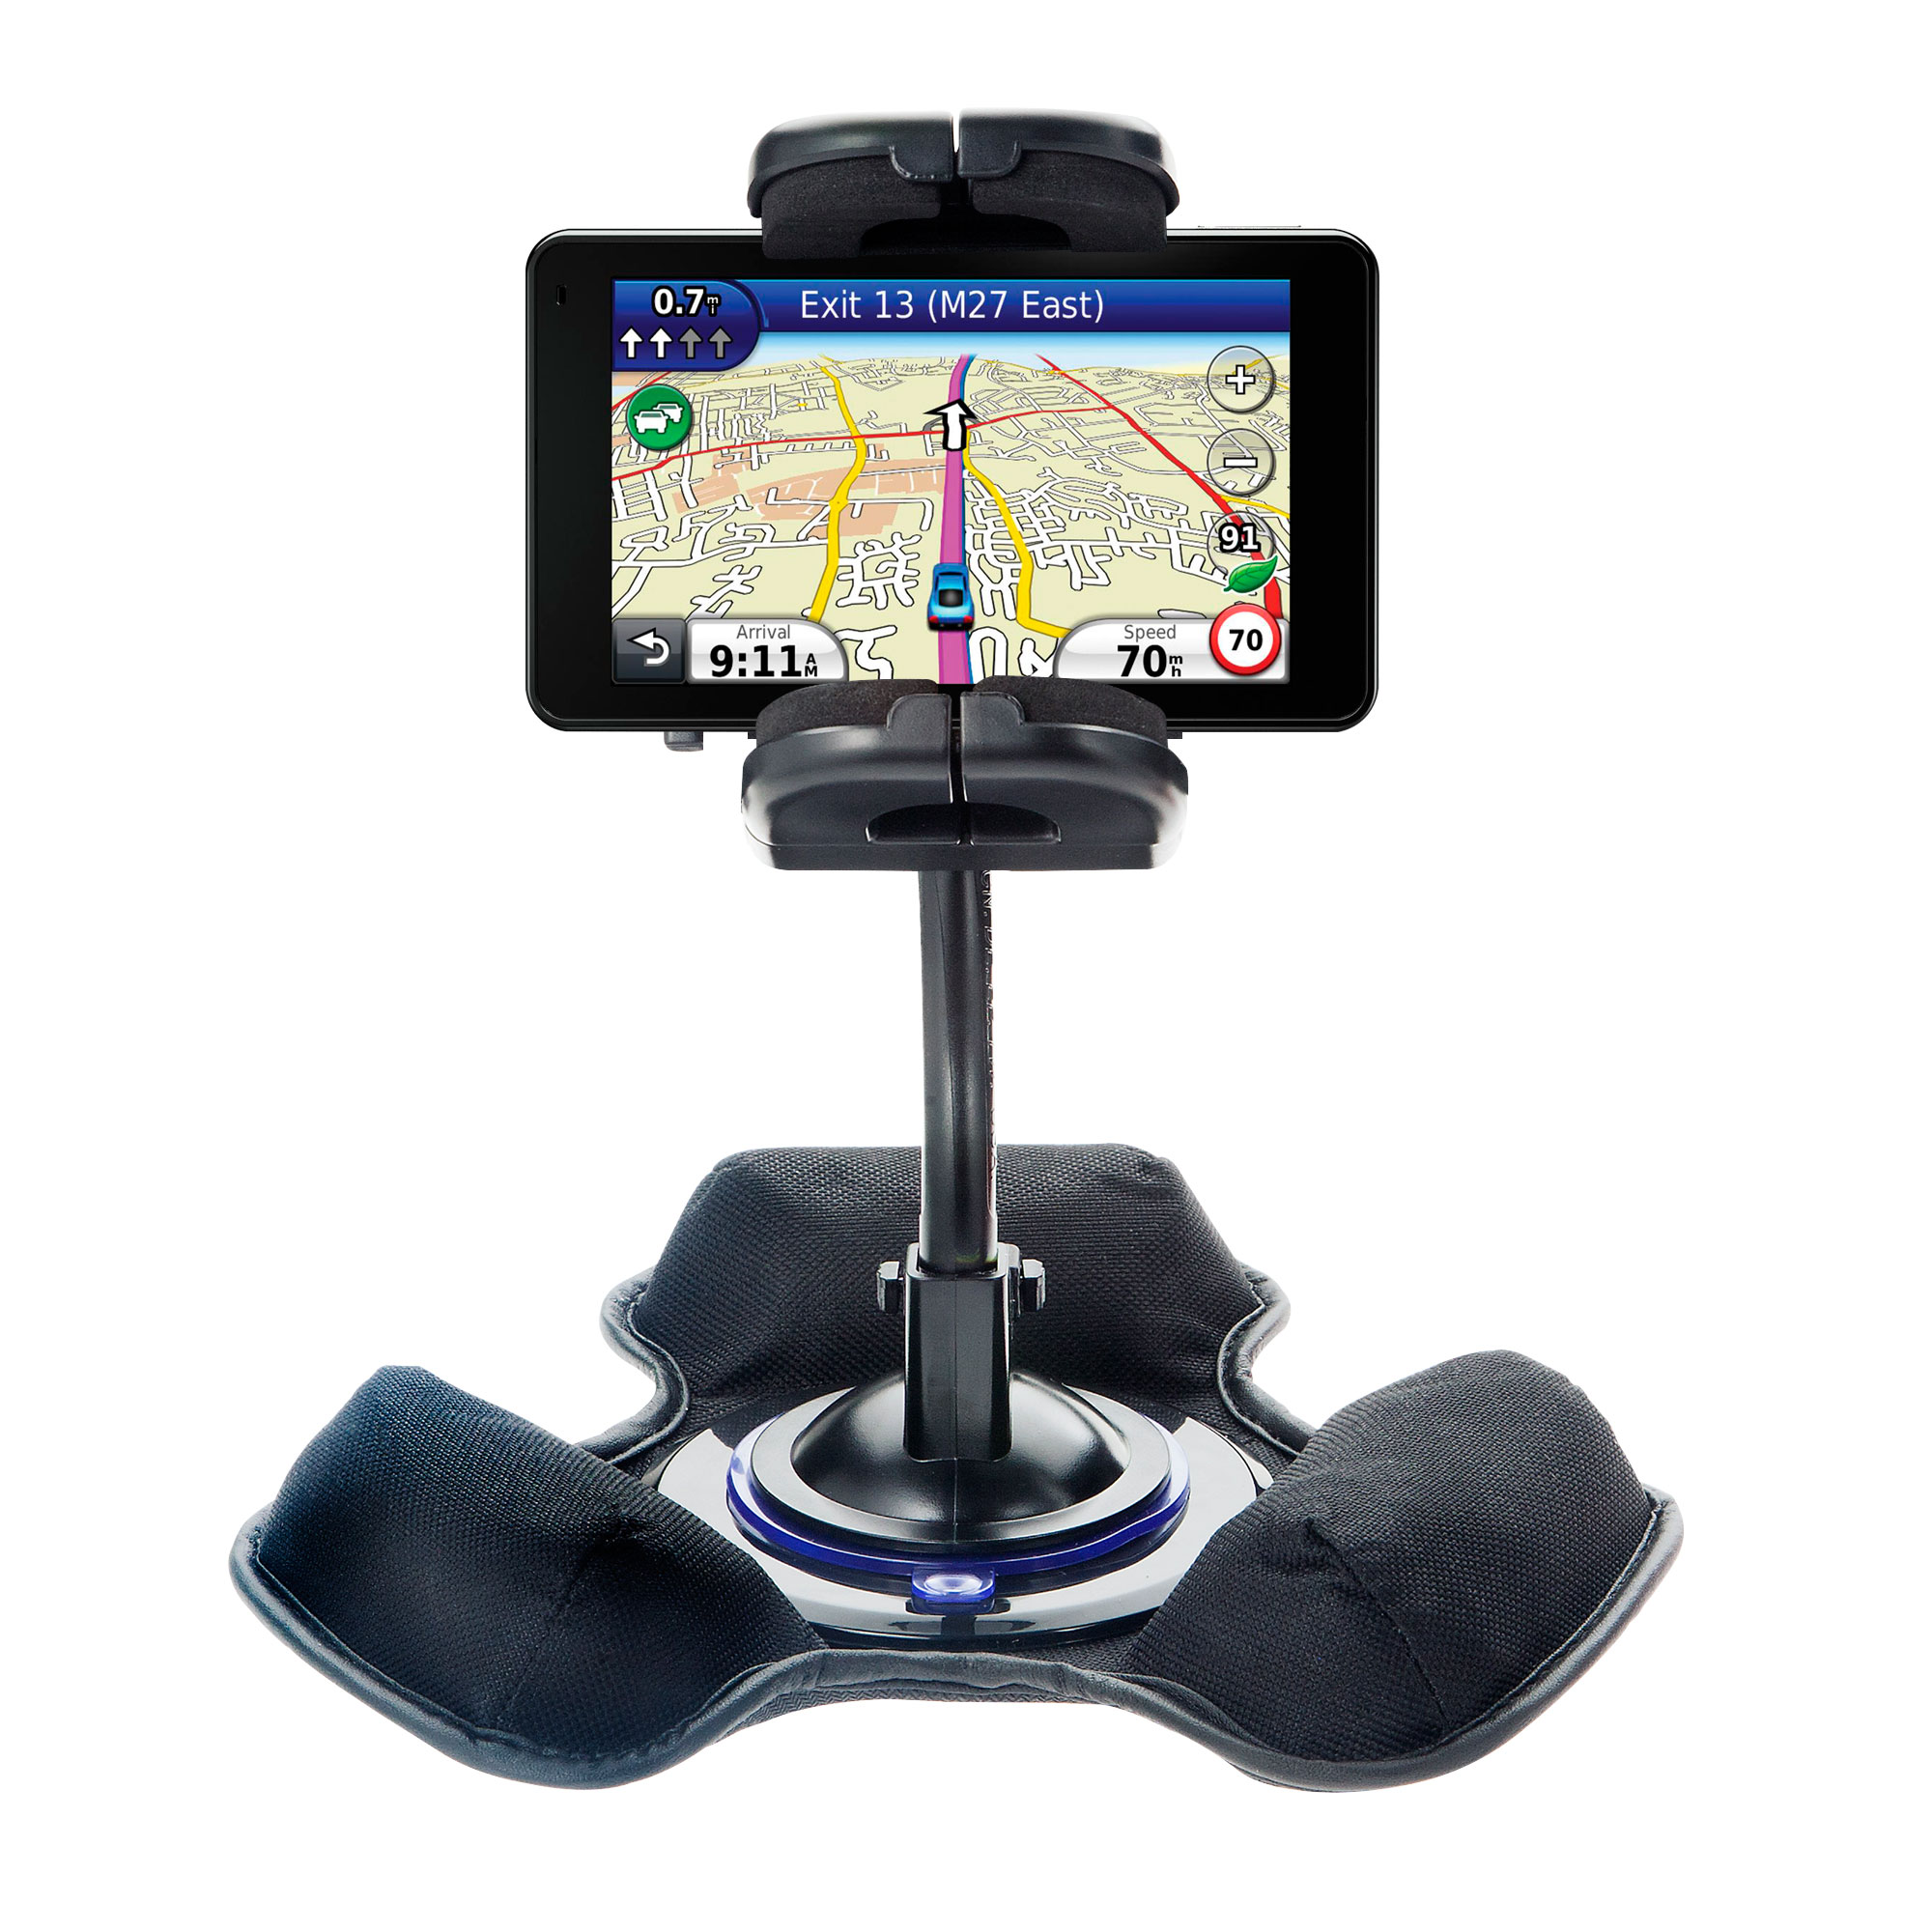 Dash and Windshield Holder compatible with the Garmin Nuvi 3760T